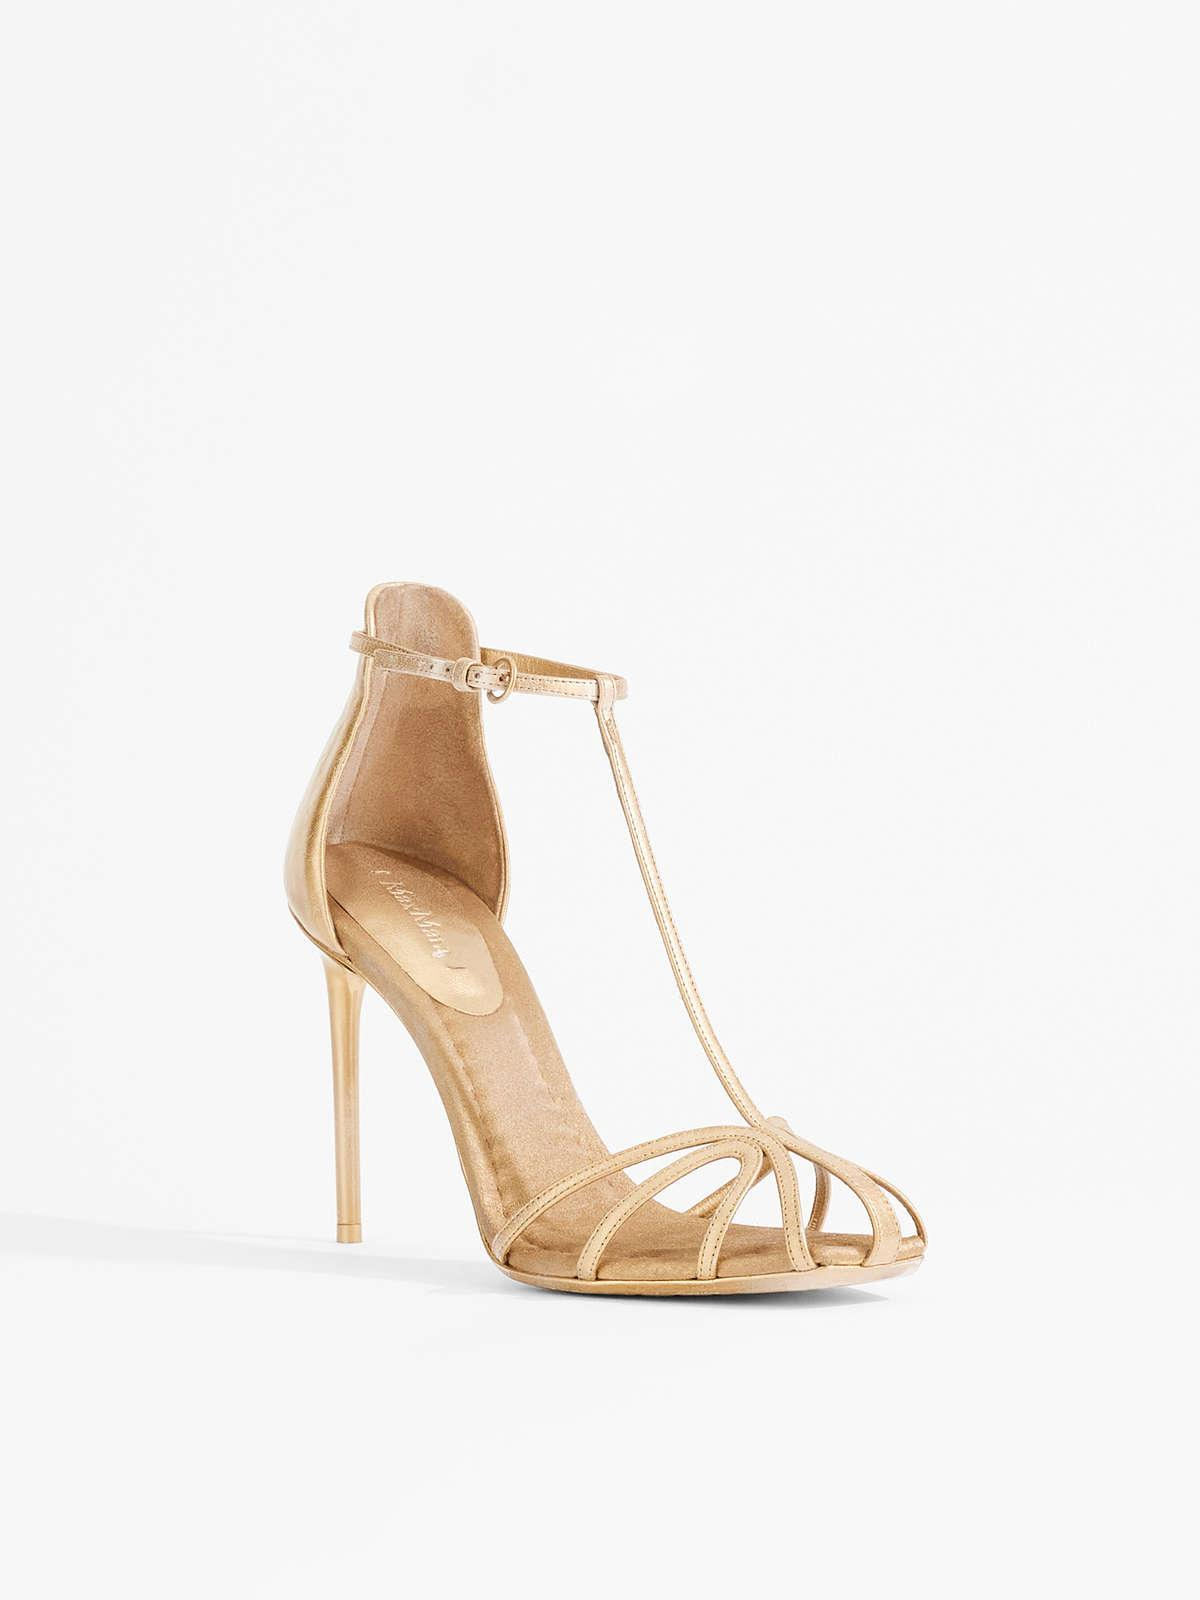 Womens Max Mara Sandals | Nappa Leather And Satin Sandals Light Gold